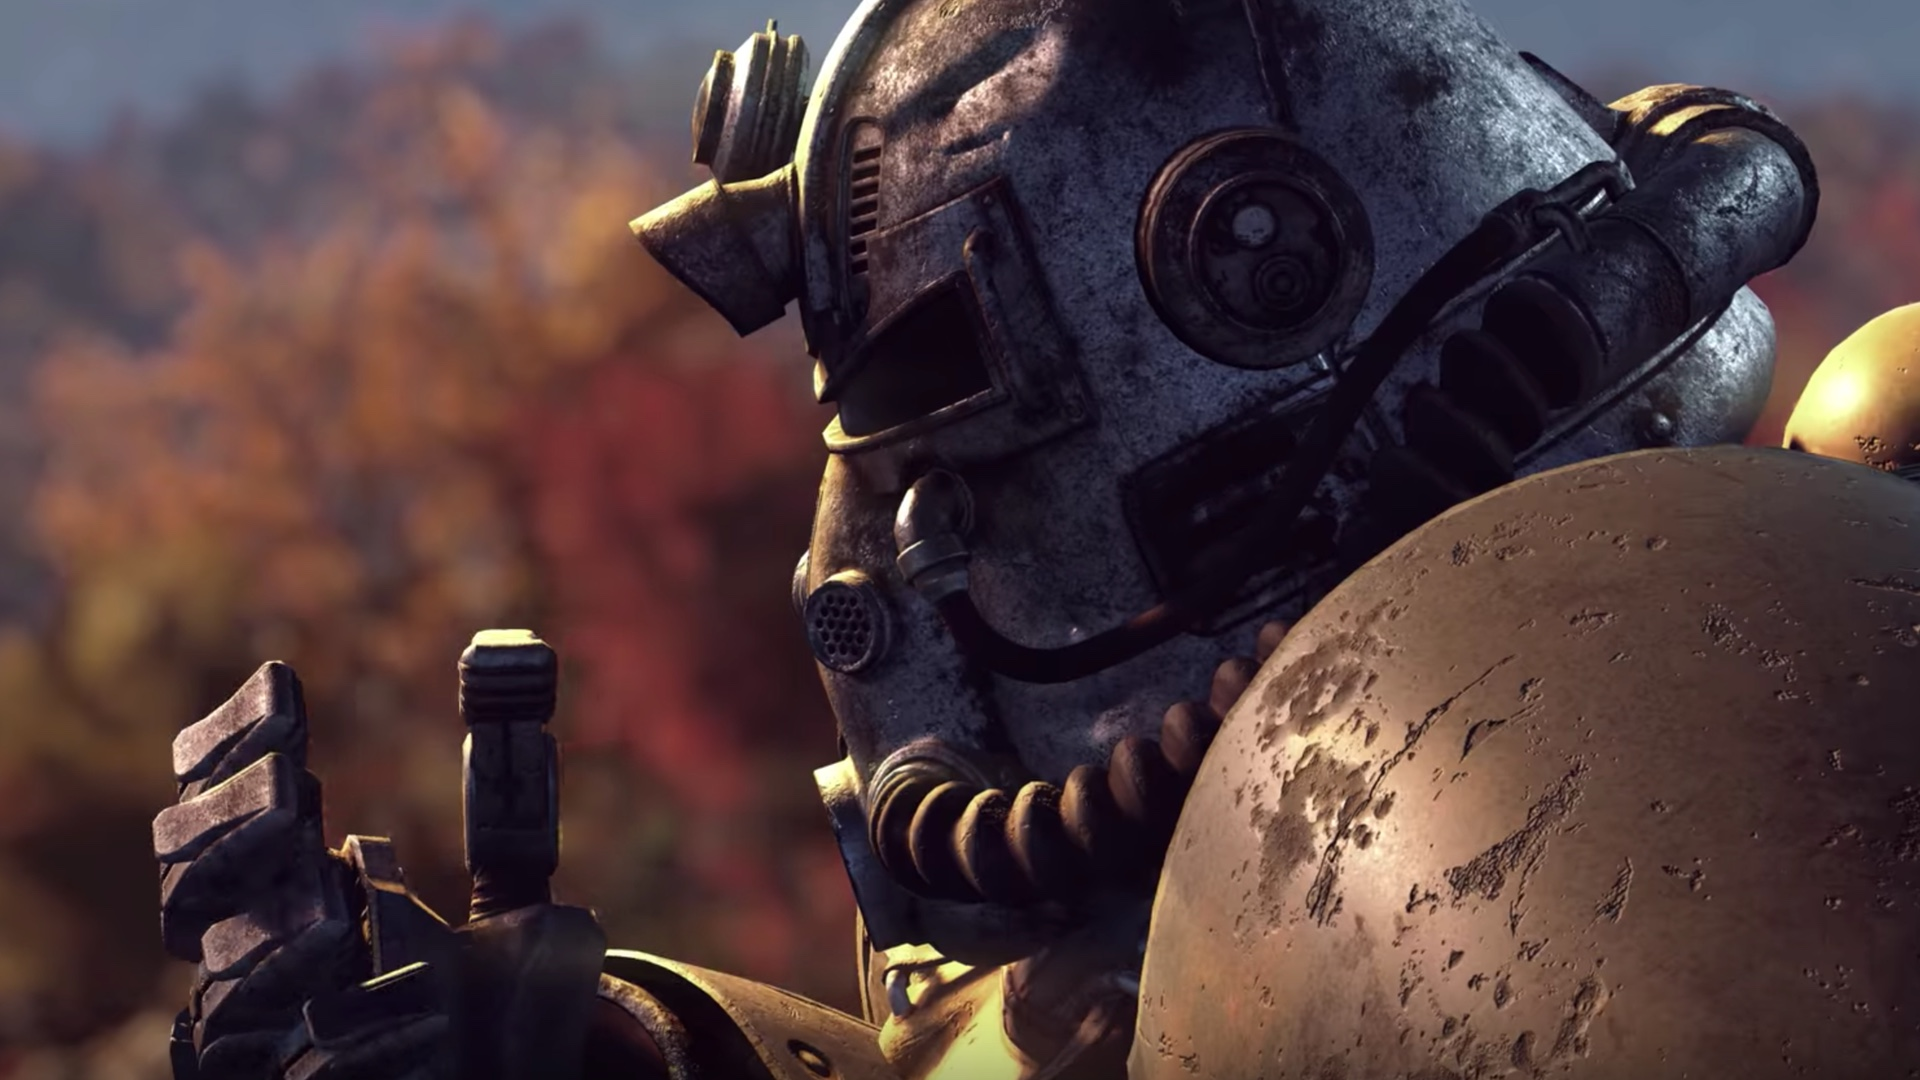 e3e351fb4e45 Bethesda plans to send out replacement canvas bags after Fallout 76 uproar